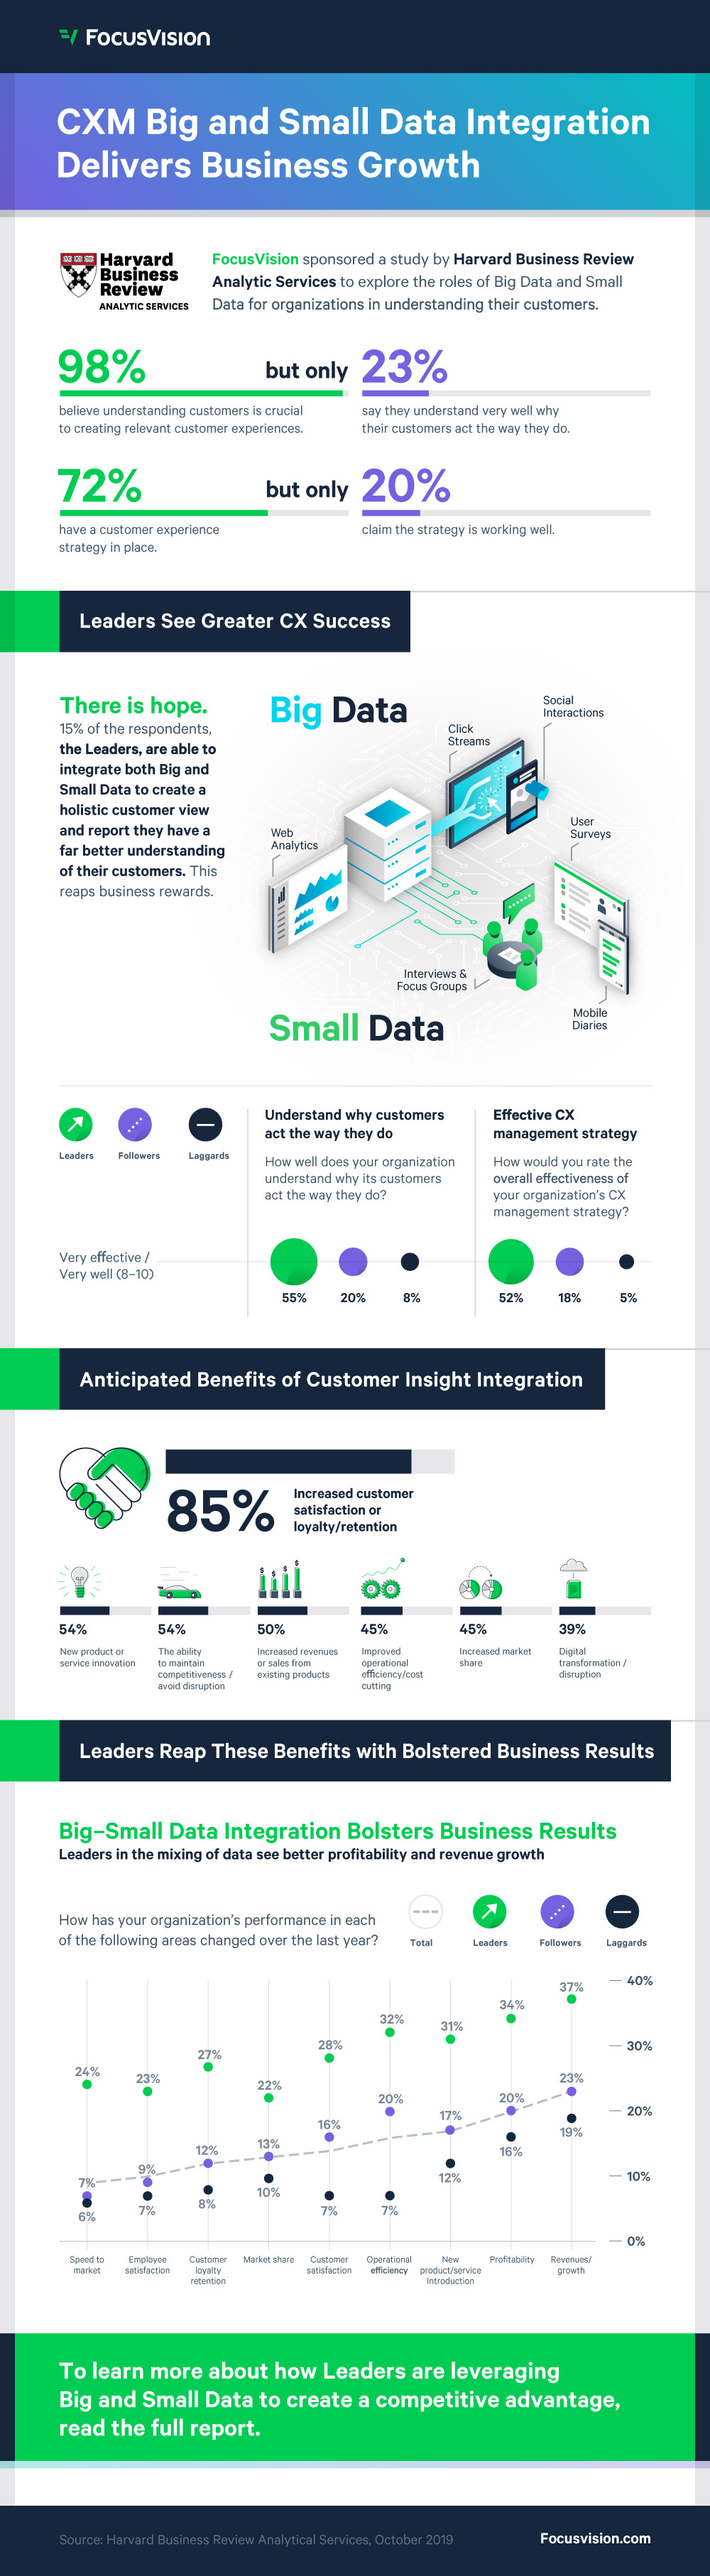 CXM Big and Small Data Integration Delivers Business Growth